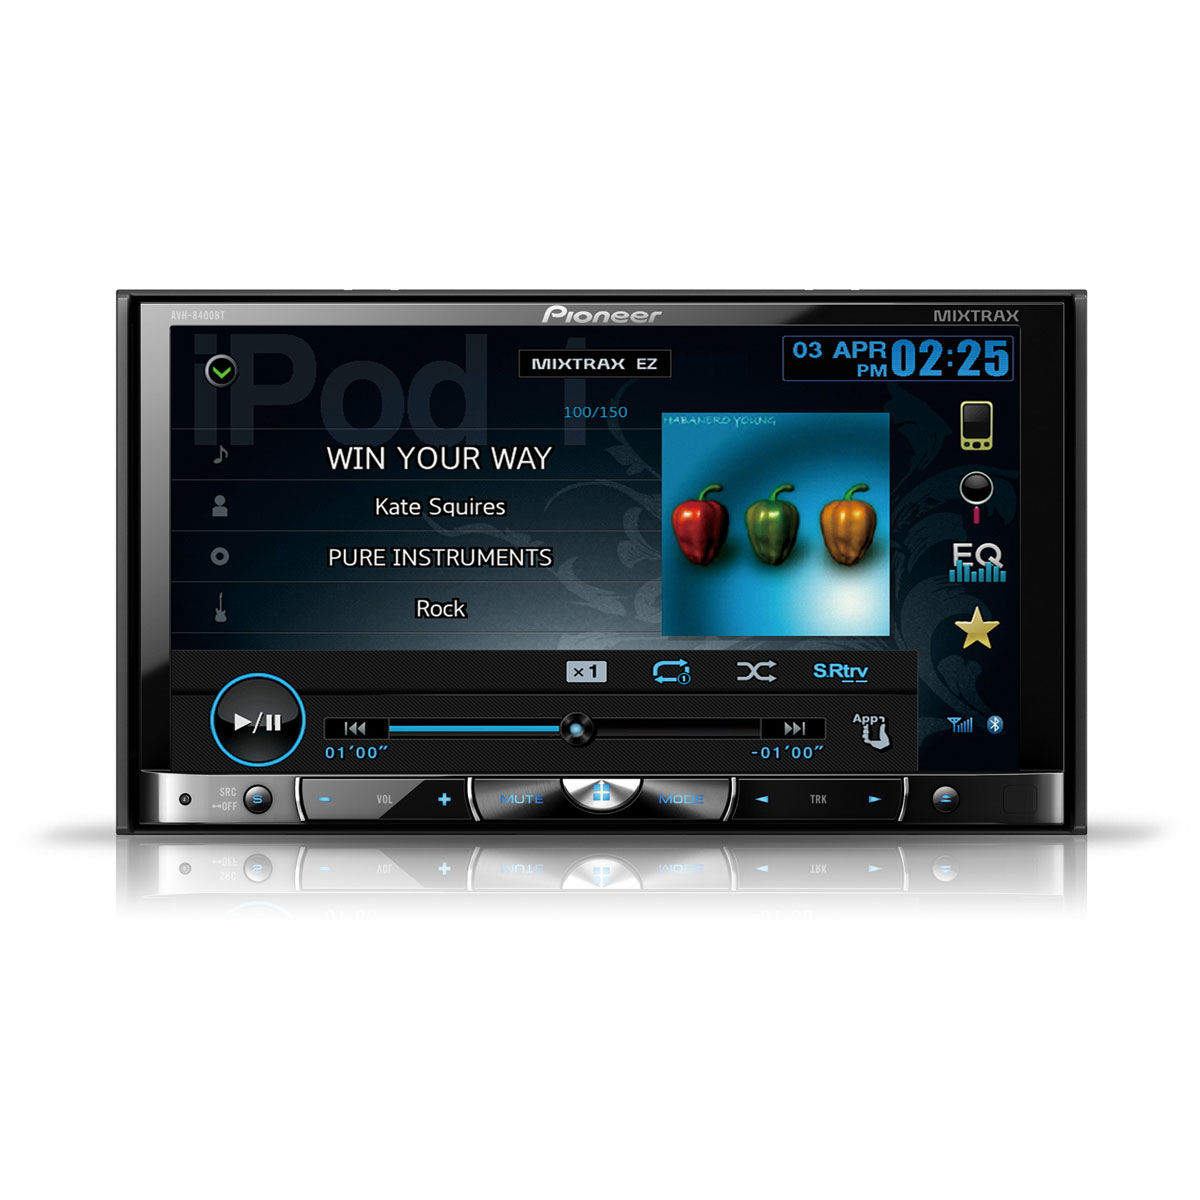 Pioneer Avic X3 Navigatore Satellitare E Autoradiolettore Dvd further Stretch Lincoln Limousine Town Car 120 also 53183 Pioneer Avh P4100dvd Vs Avh P6000dvd in addition PB00140561 further PB00129446. on pioneer divx